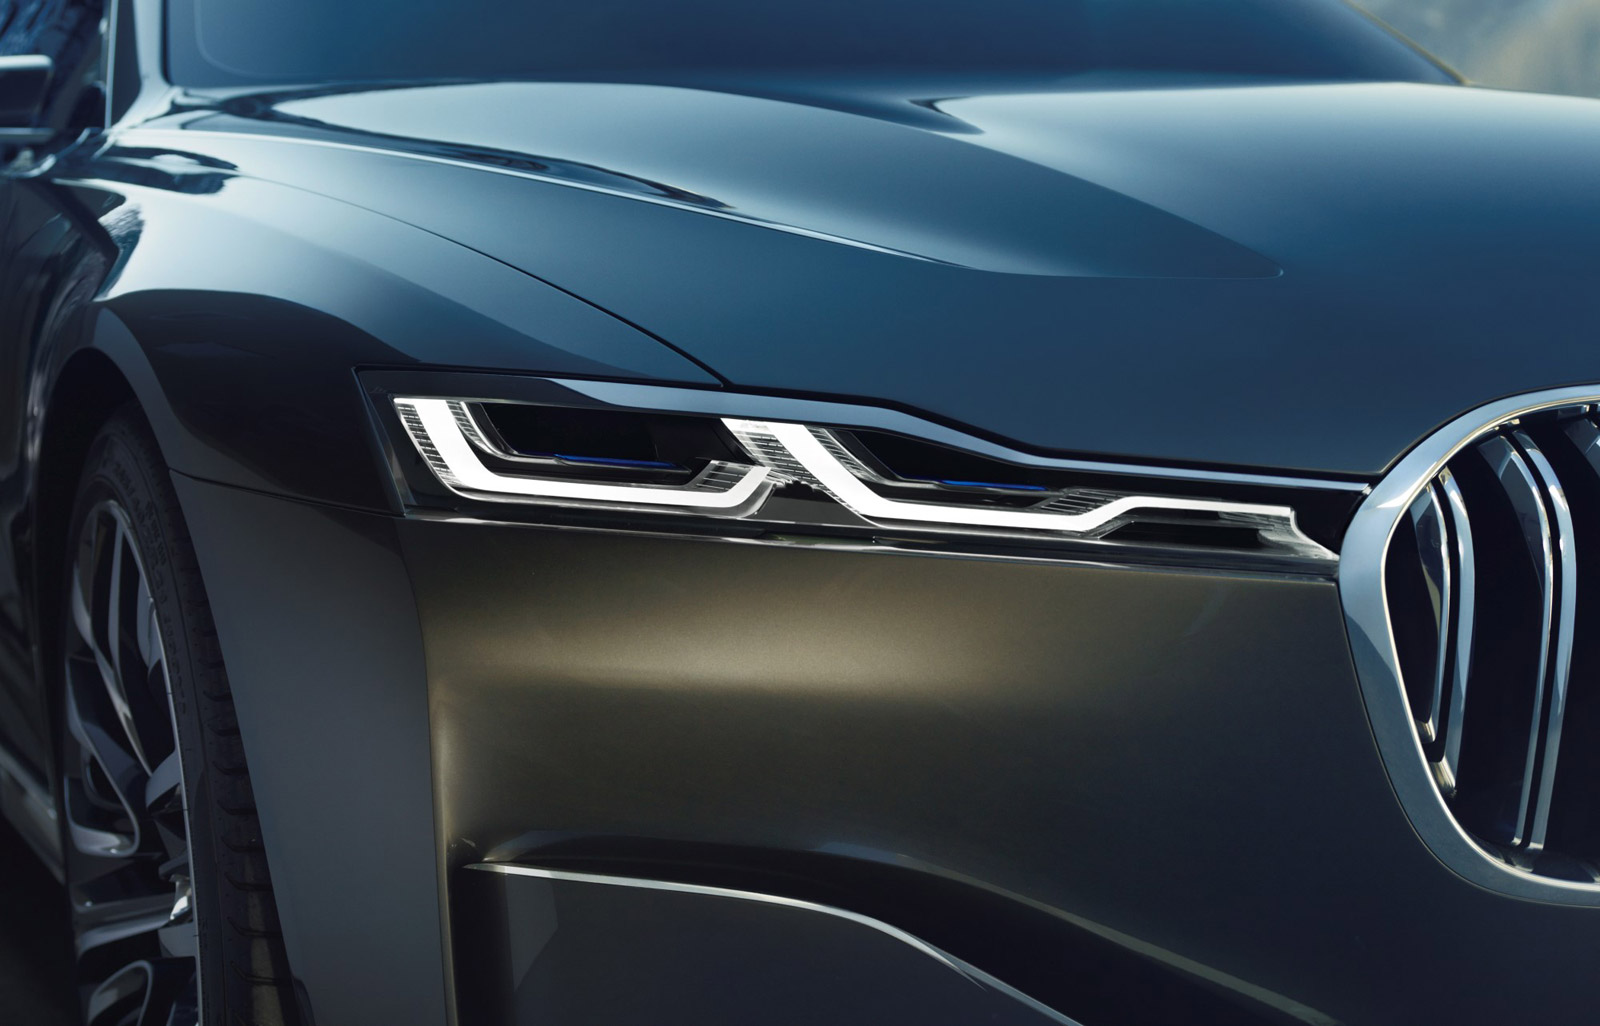 2016 Chevy Volt Teased, Ram EcoDiesel Mileage, 2015 Hyundai Sonata Driven: Today's Car News